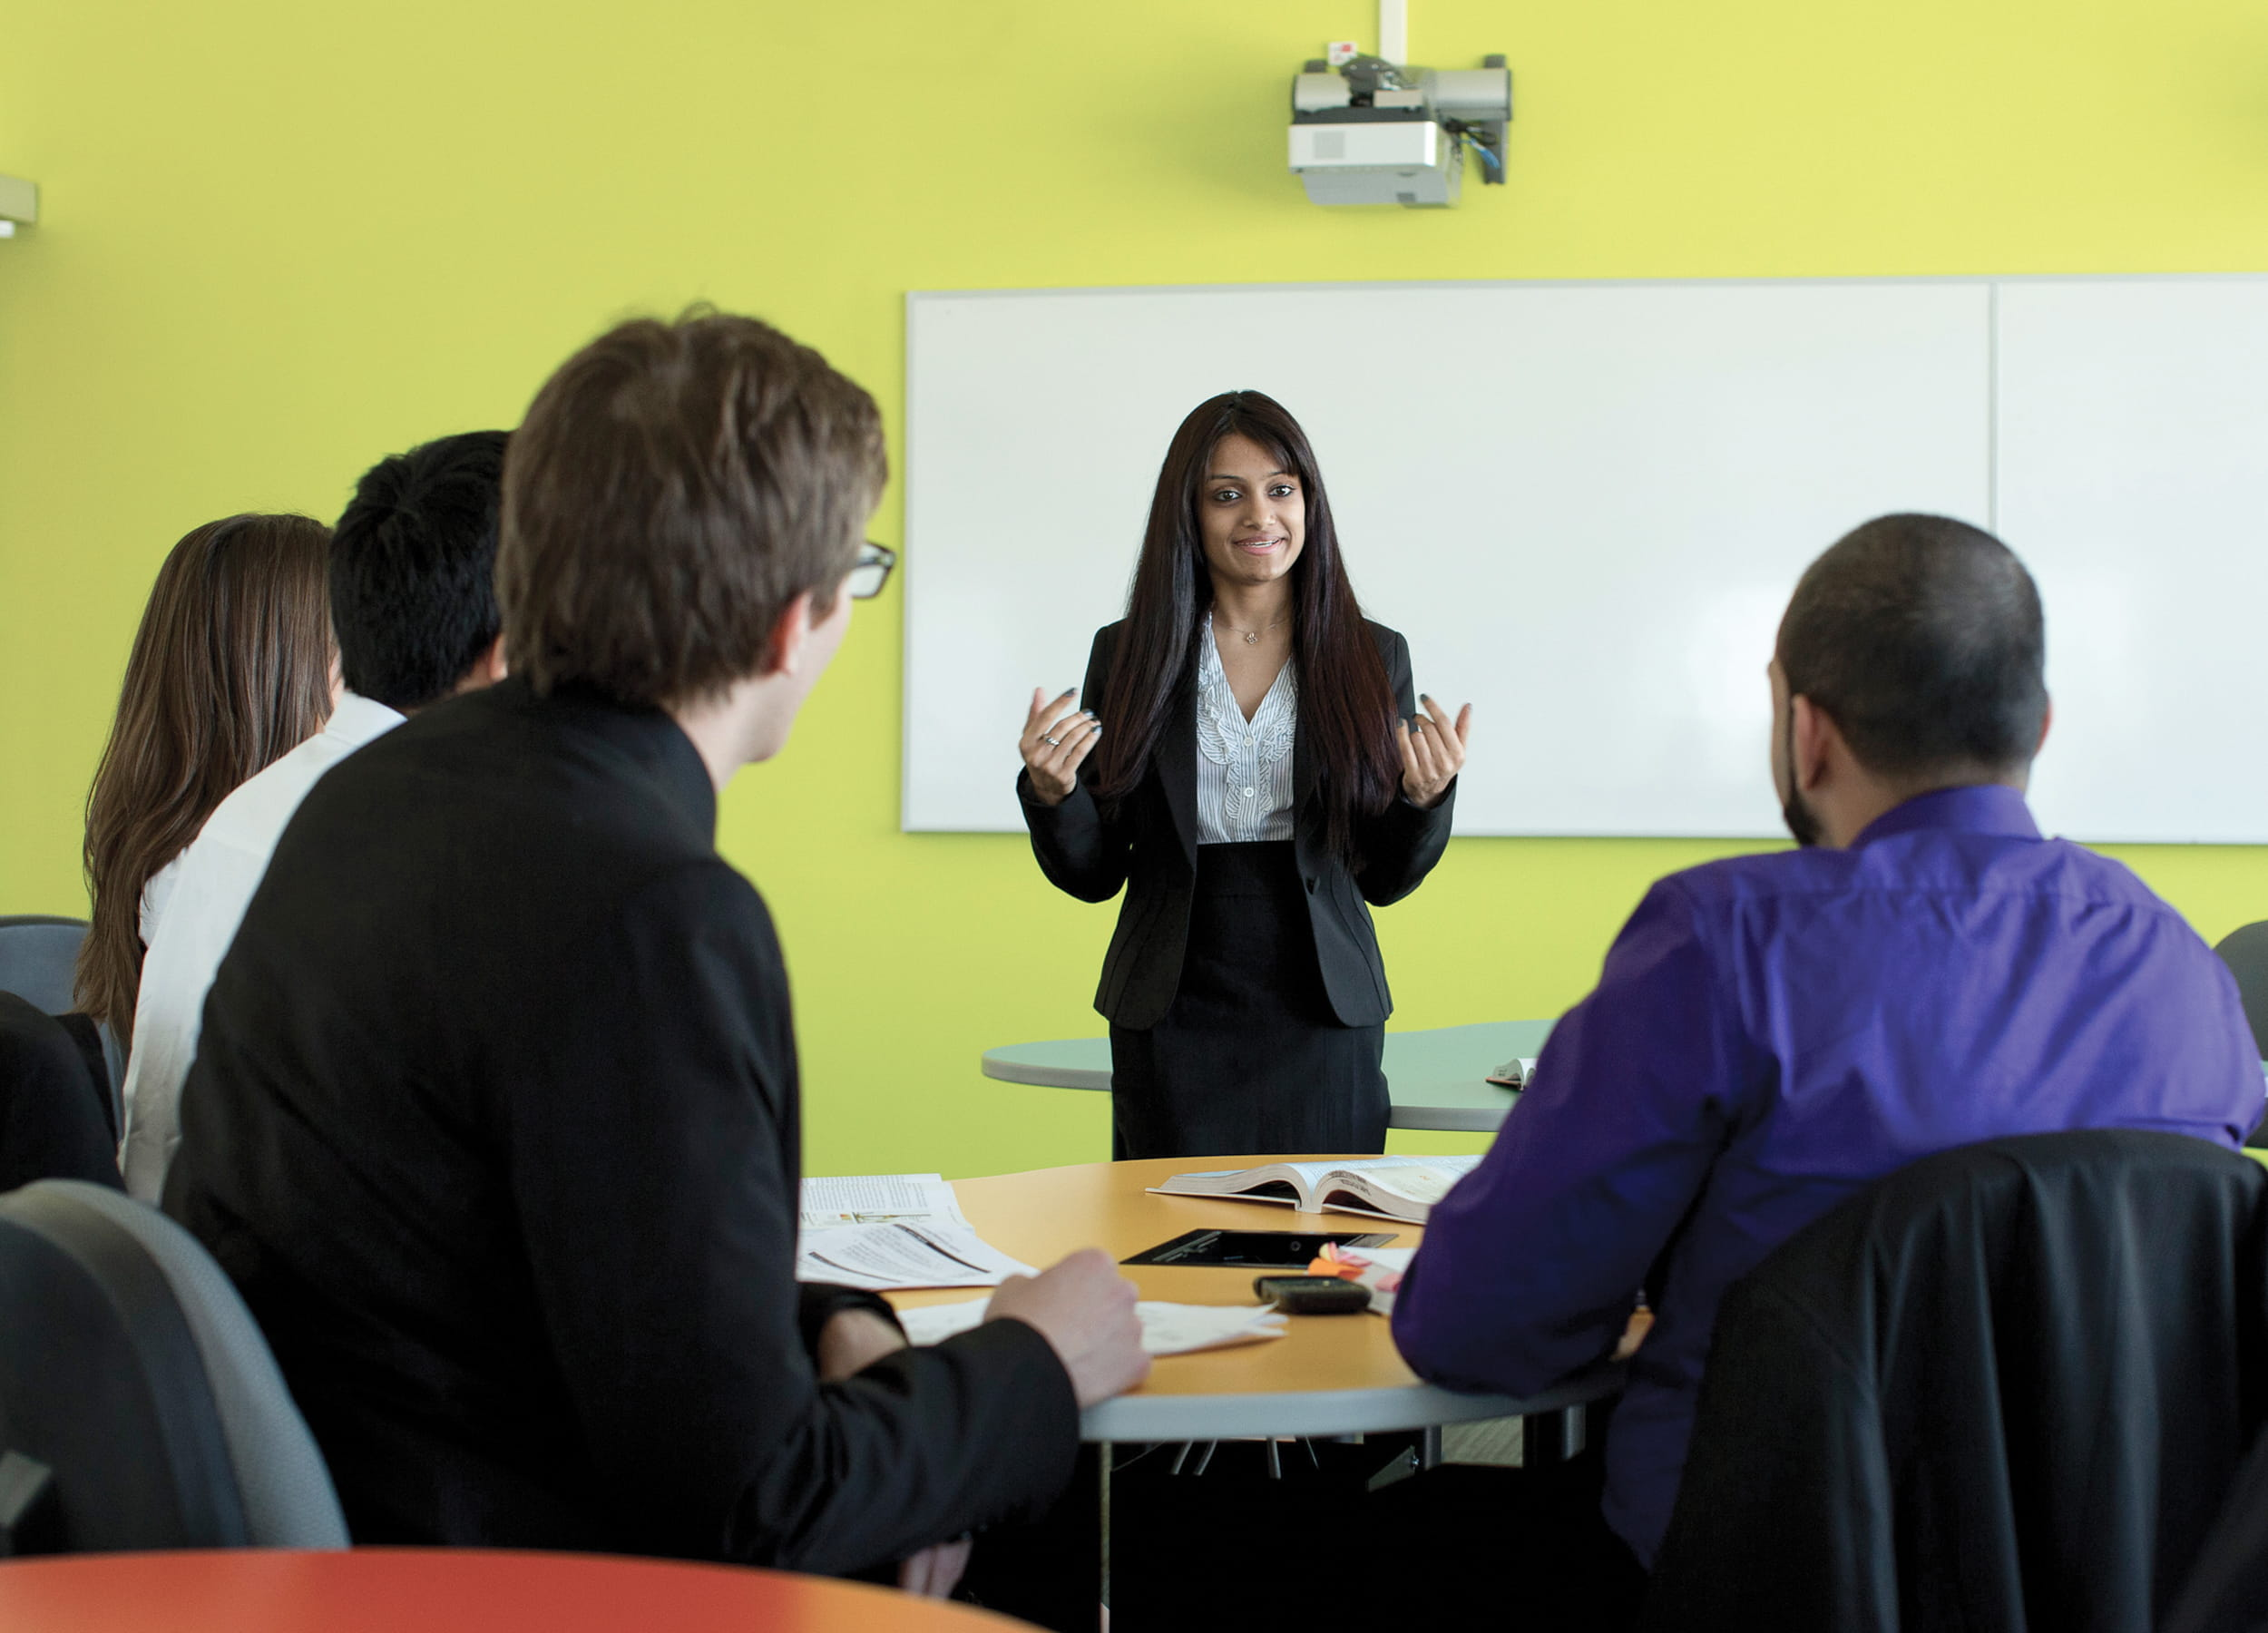 Business Administration instructor and students in a classroom